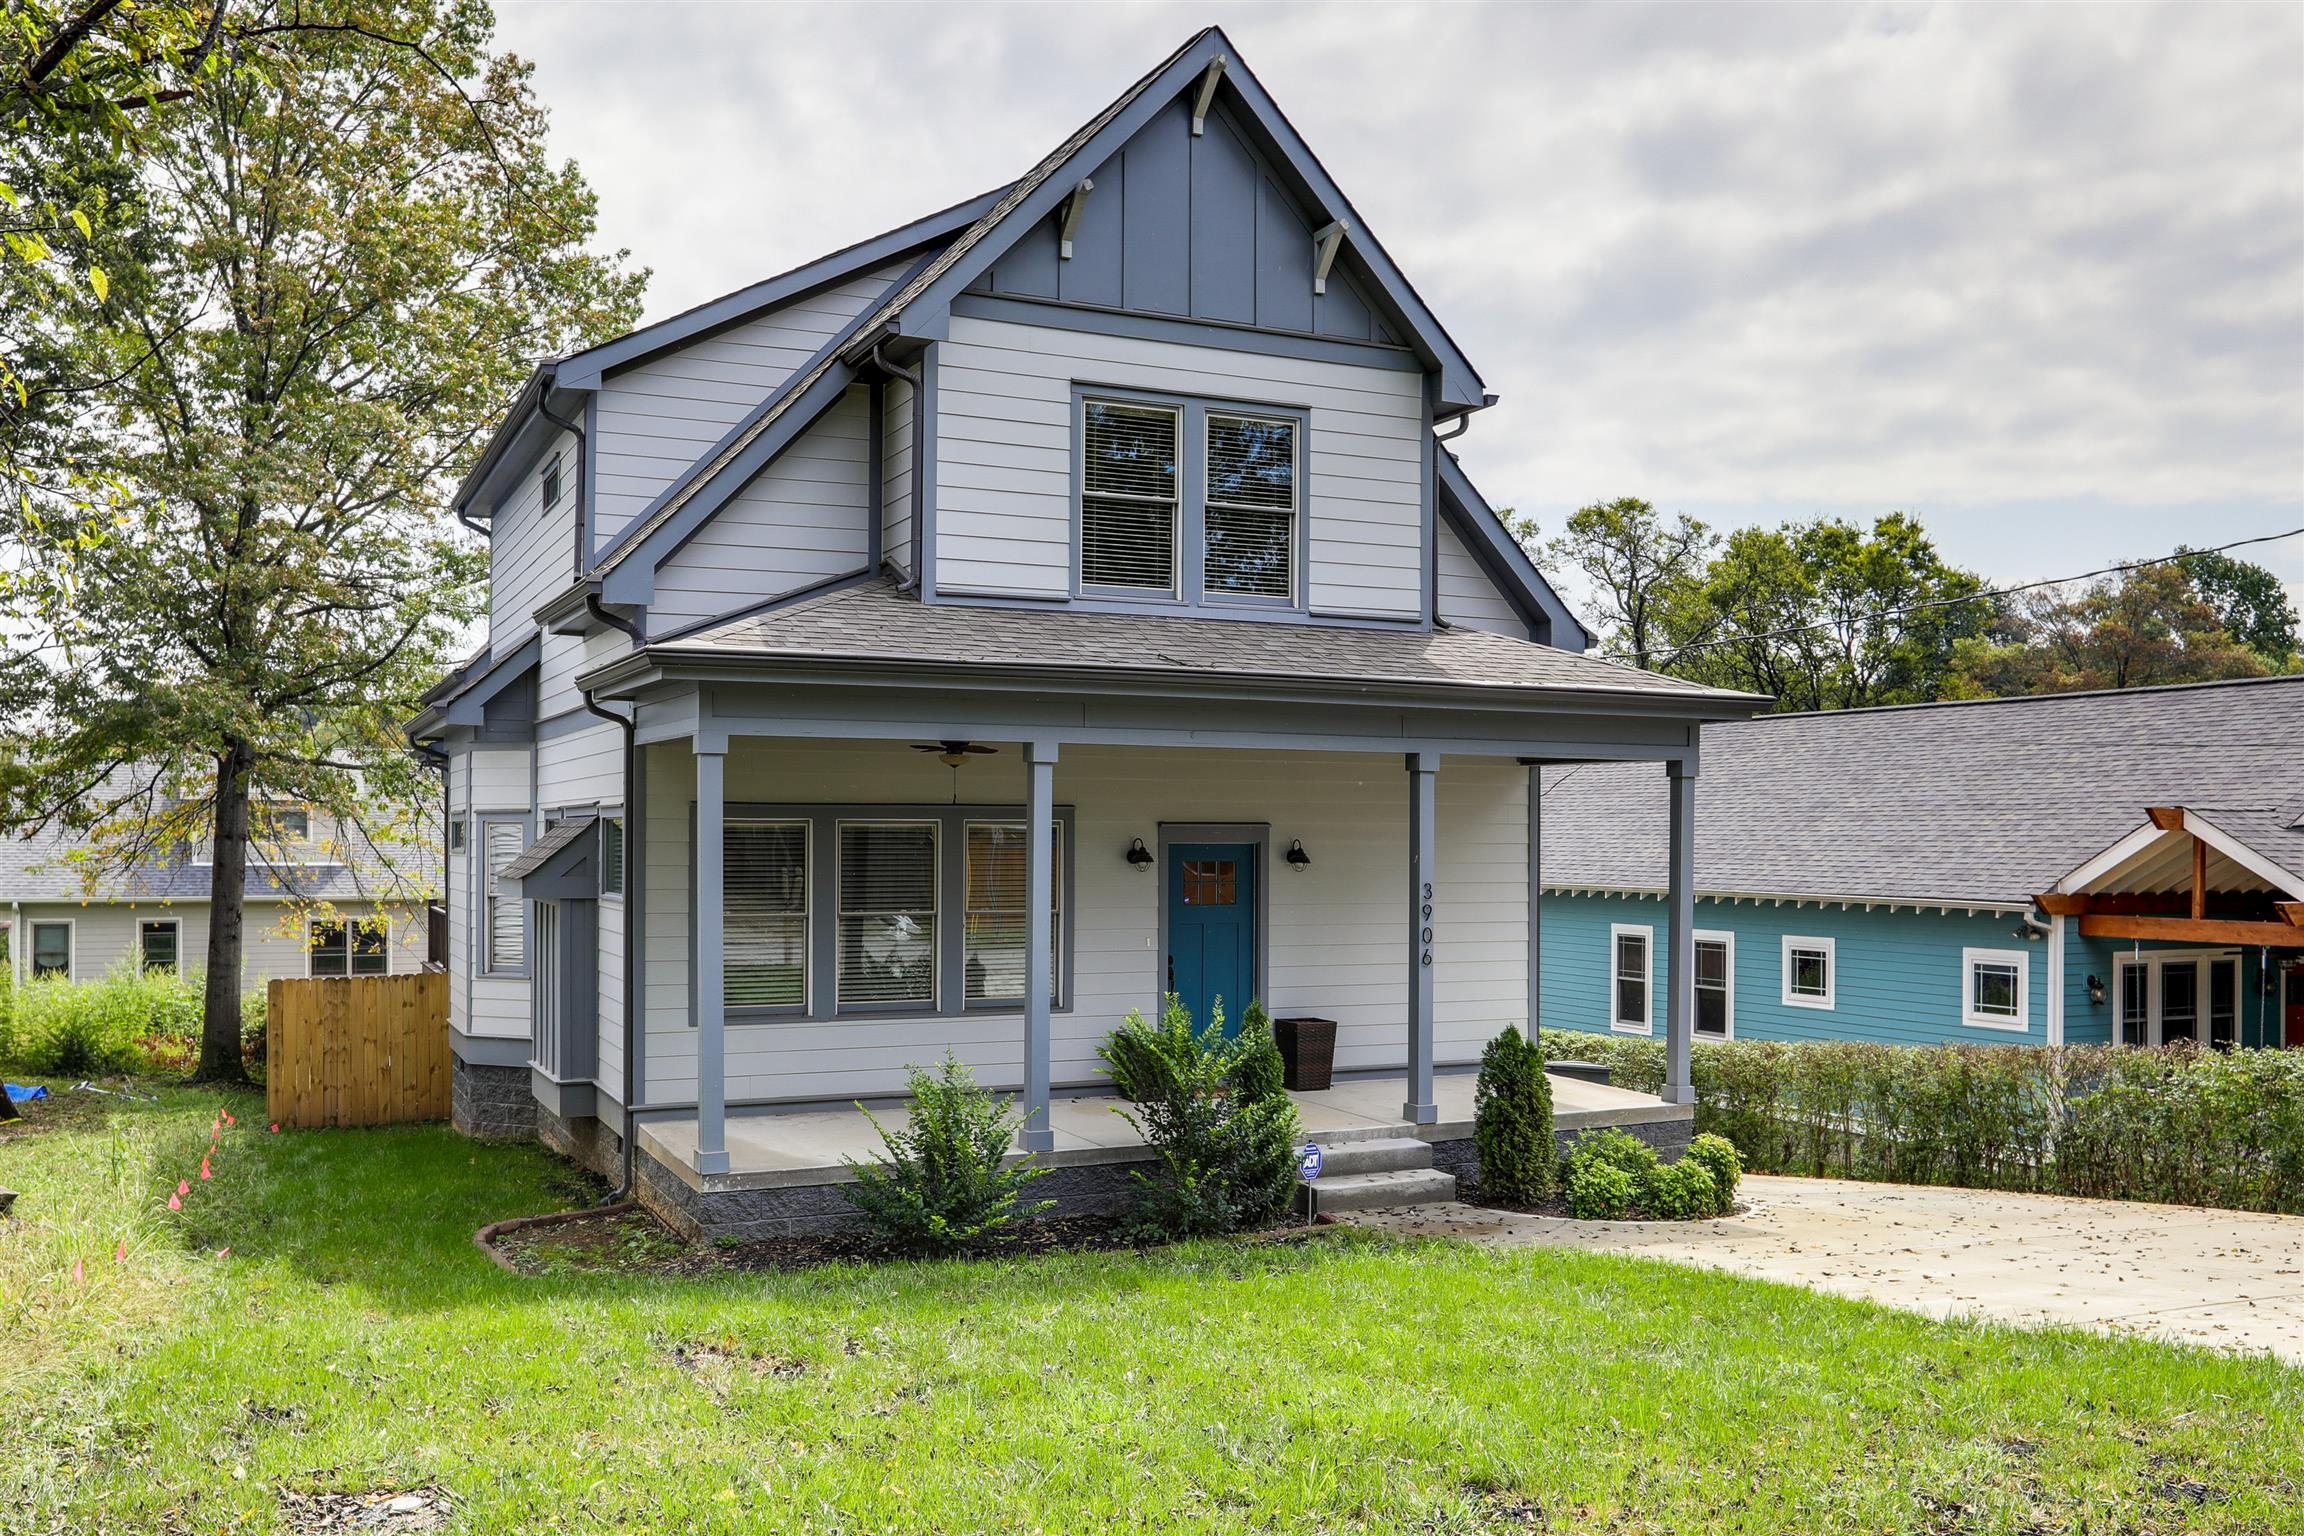 3906 Oxford St, Nashville, TN 37216 - Nashville, TN real estate listing